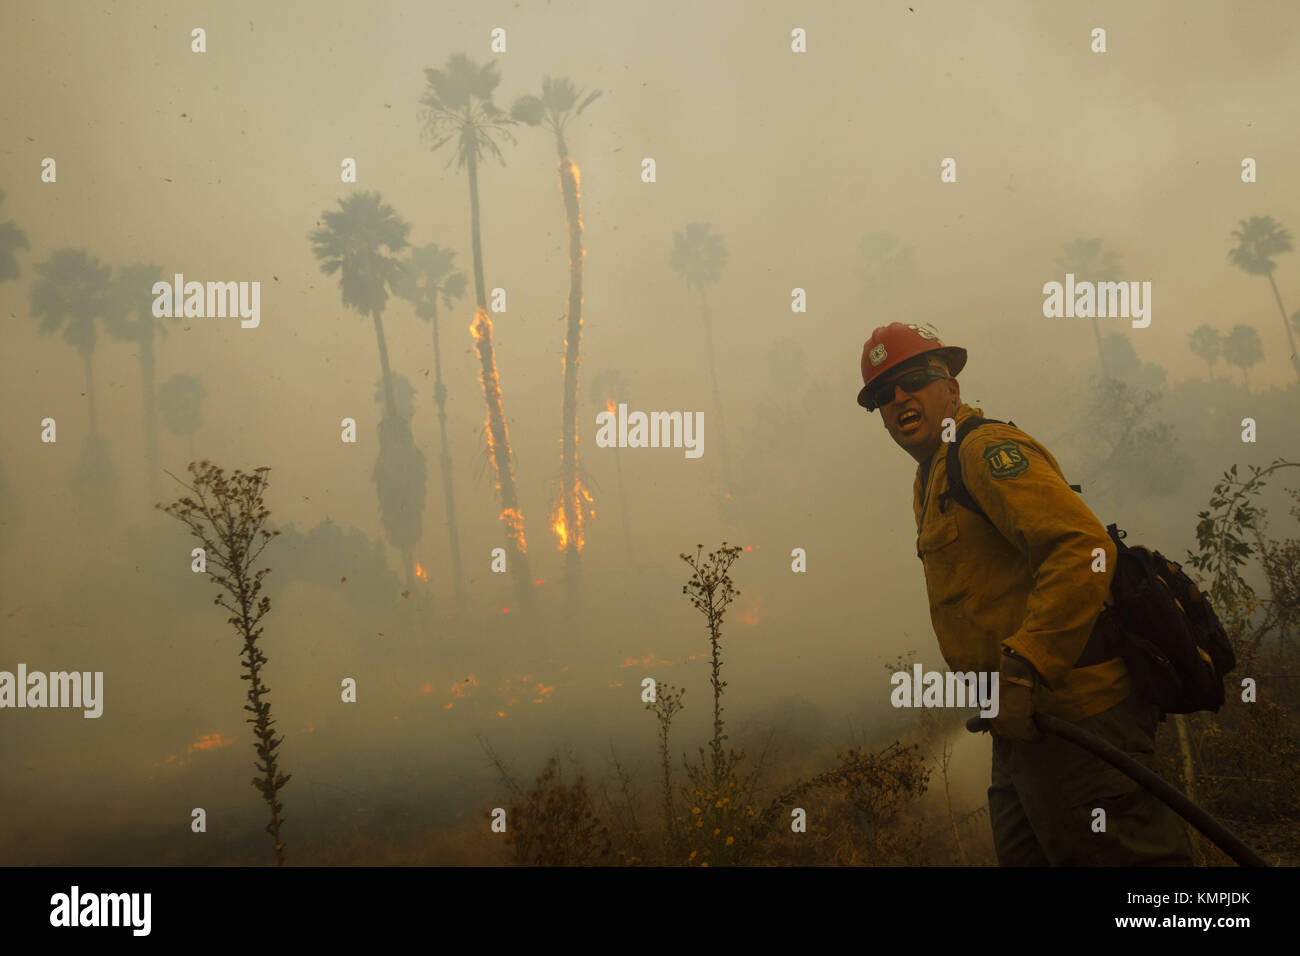 Bonsall, CA, USA. 7th Dec, 2017. Firefighters battle the Lilac Fire on Thursday, December 7, 2017 near Bonsall in - Stock Image